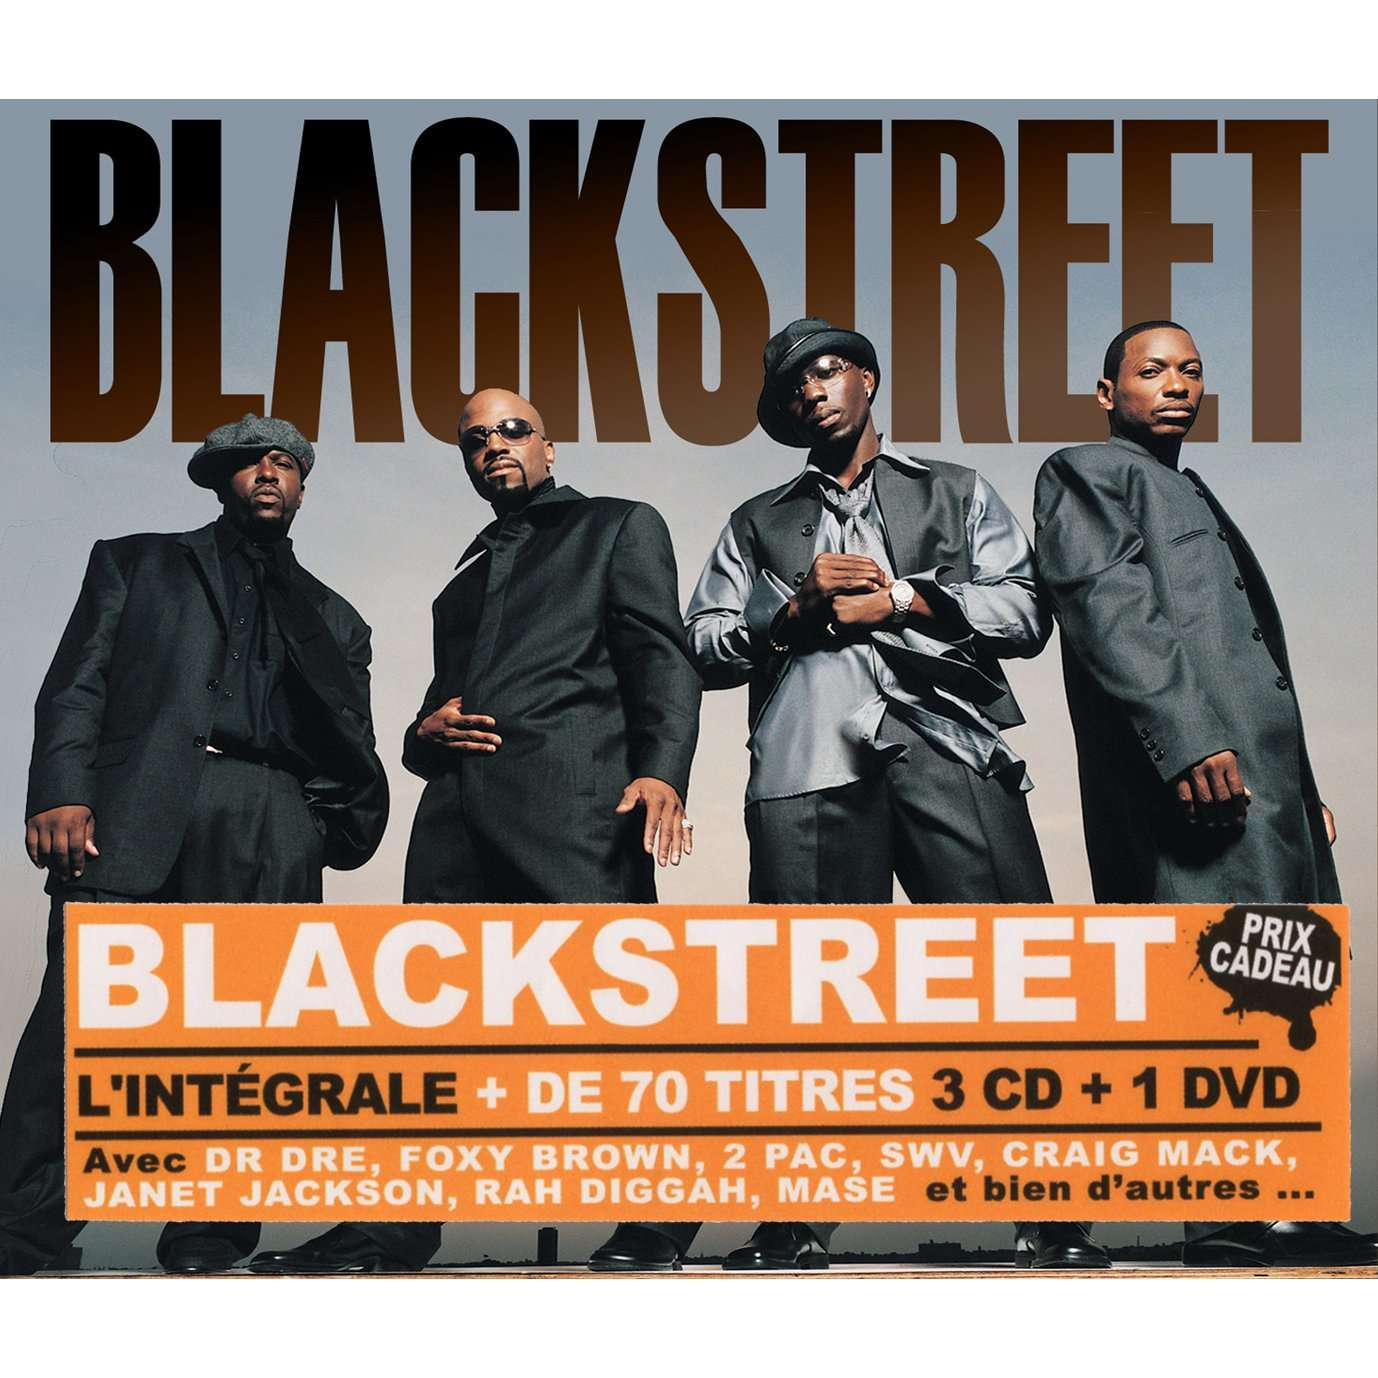 blackstreet coffret 3cds + 1 Dvd